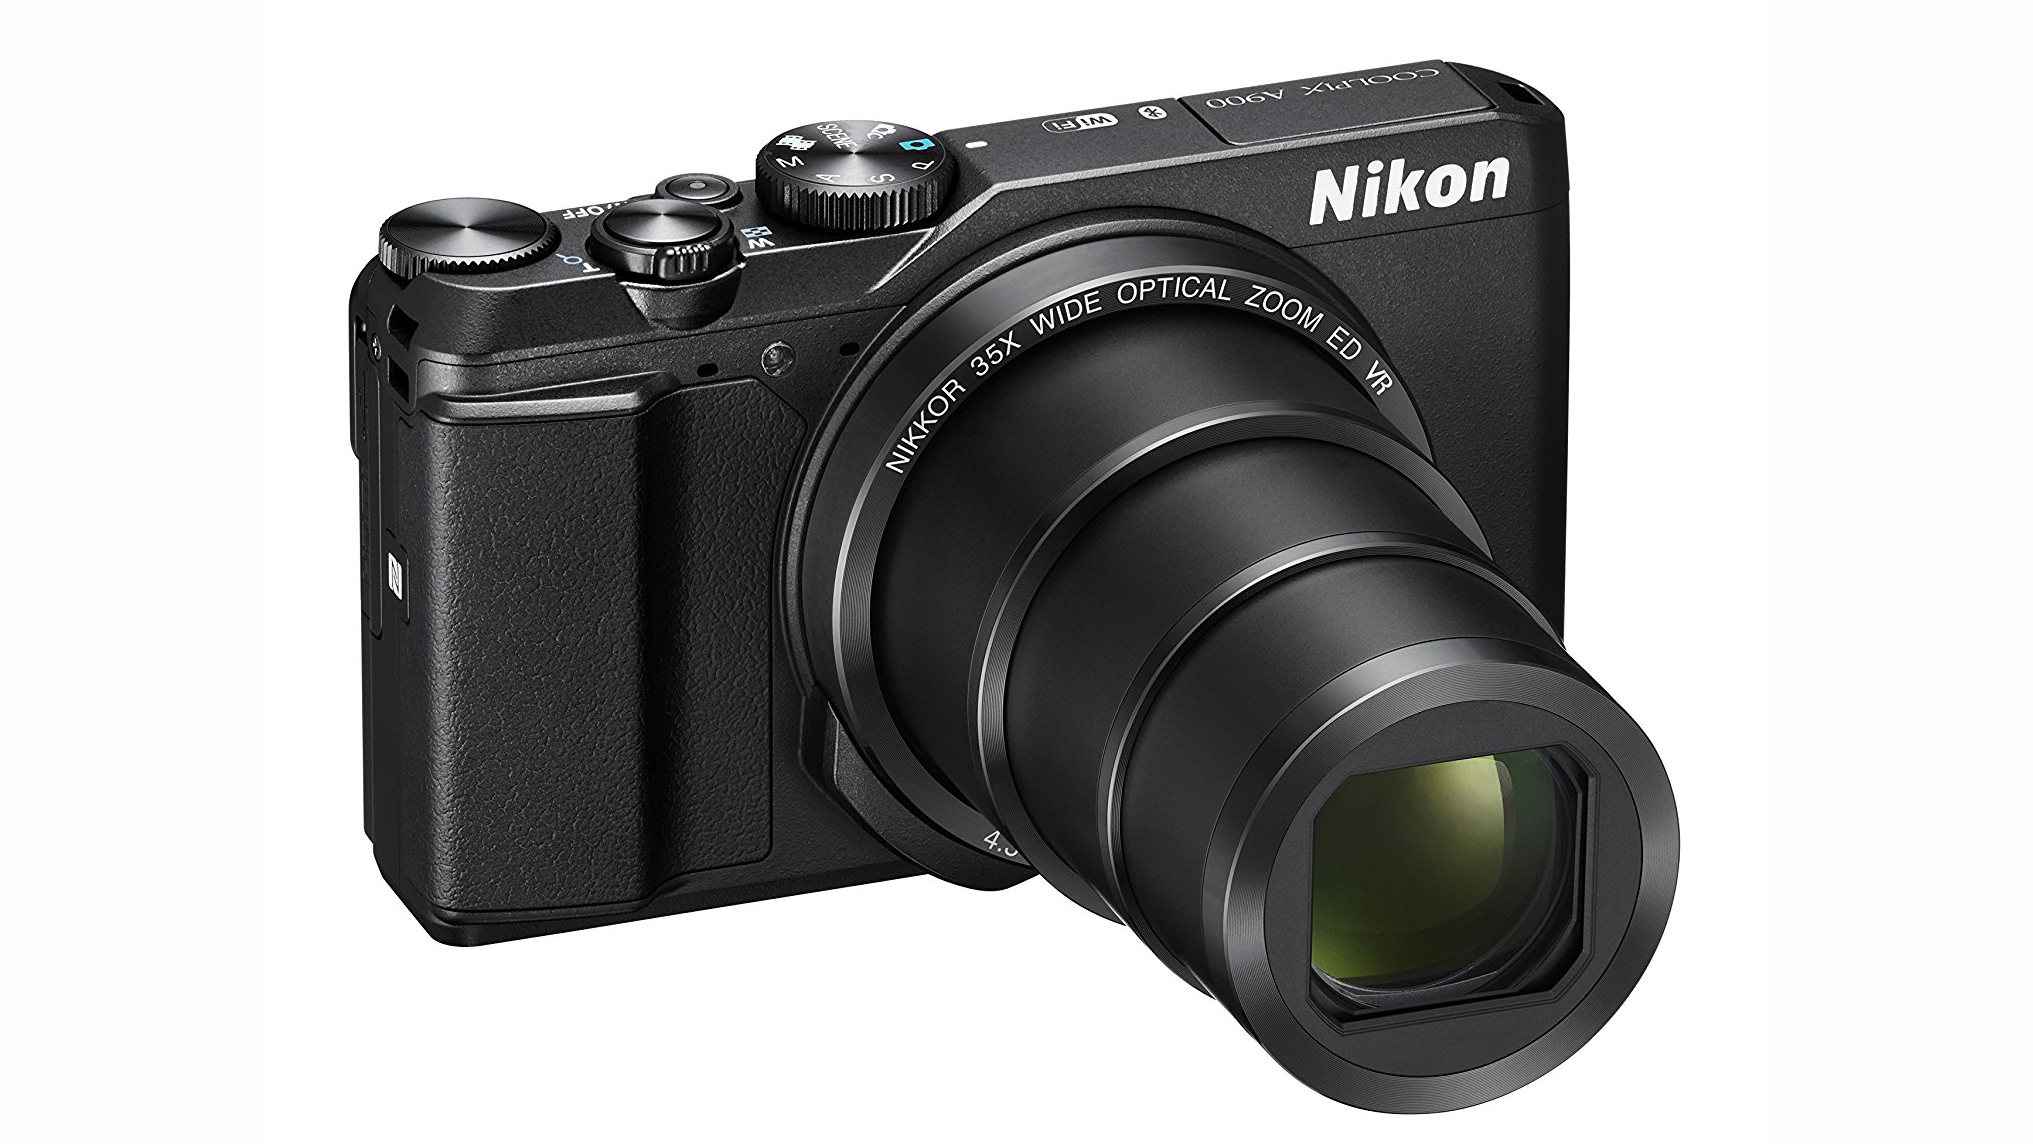 Amazon spring sale deal: Nikon A900 superzoom compact is just £214